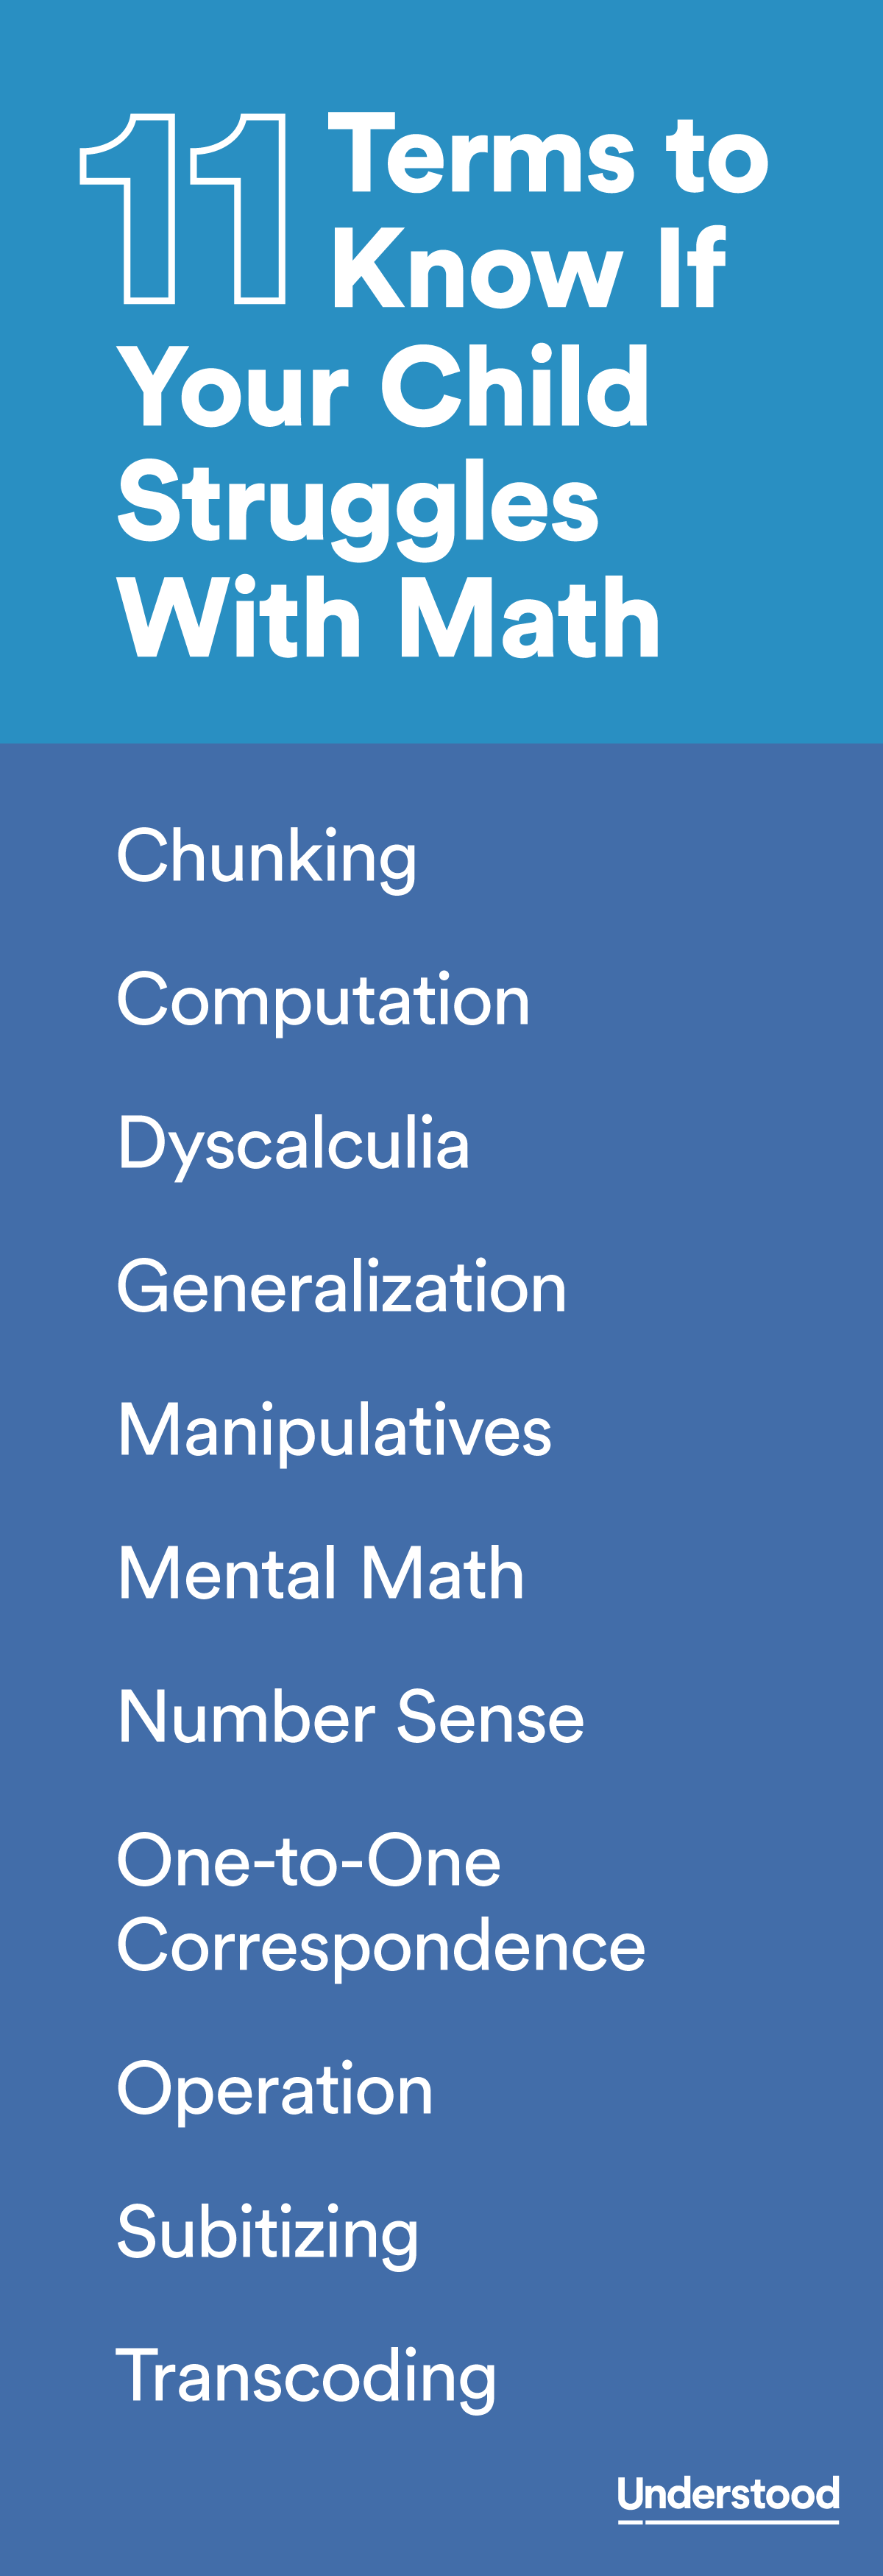 10 Terms To Know If Your Child Struggles With Math